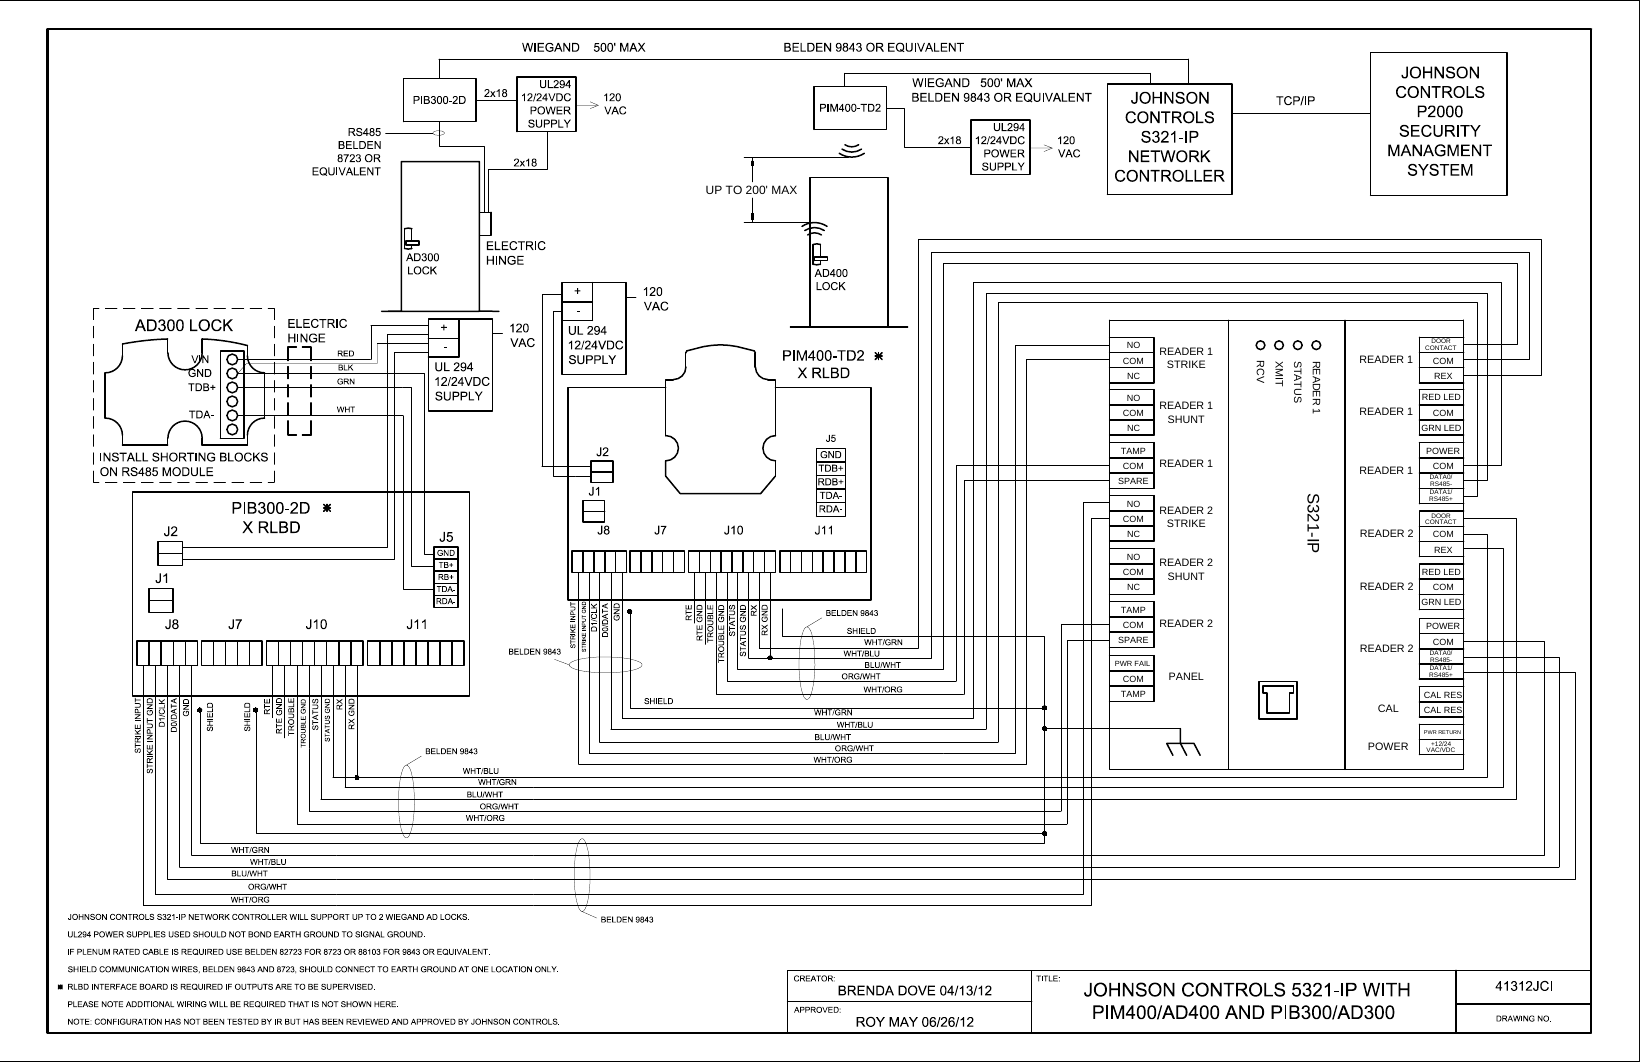 Schlage Electronics Ad300 Ad400 Wiring Diagram Johnson Controls S321 Ip Wiegand